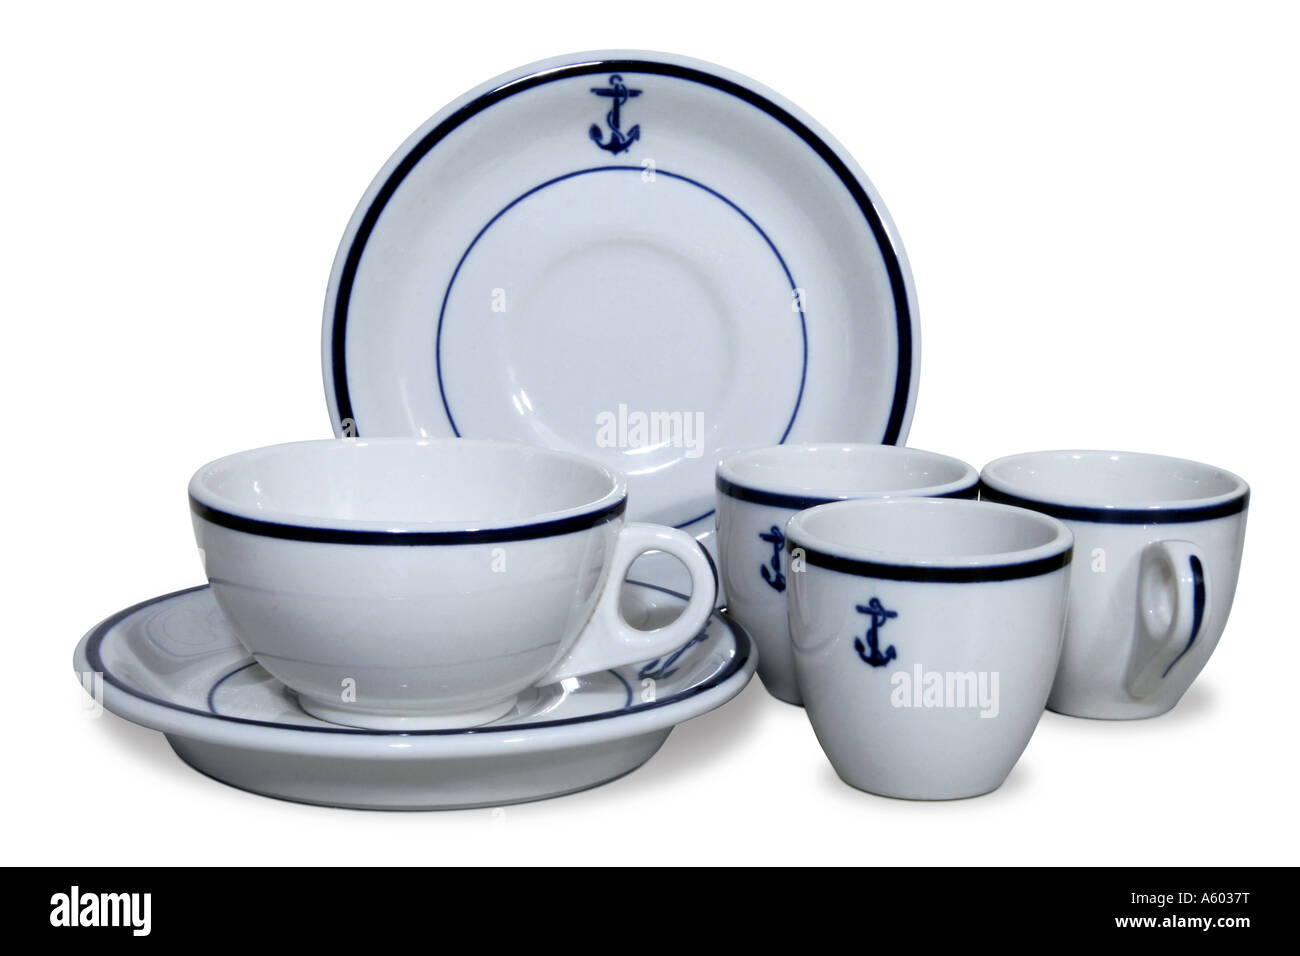 Circa 1940u0027s US Navy china lot with fouled anchor design. This image has a clipping path.  sc 1 st  Alamy & Circa 1940u0027s US Navy china lot with fouled anchor design. This image ...